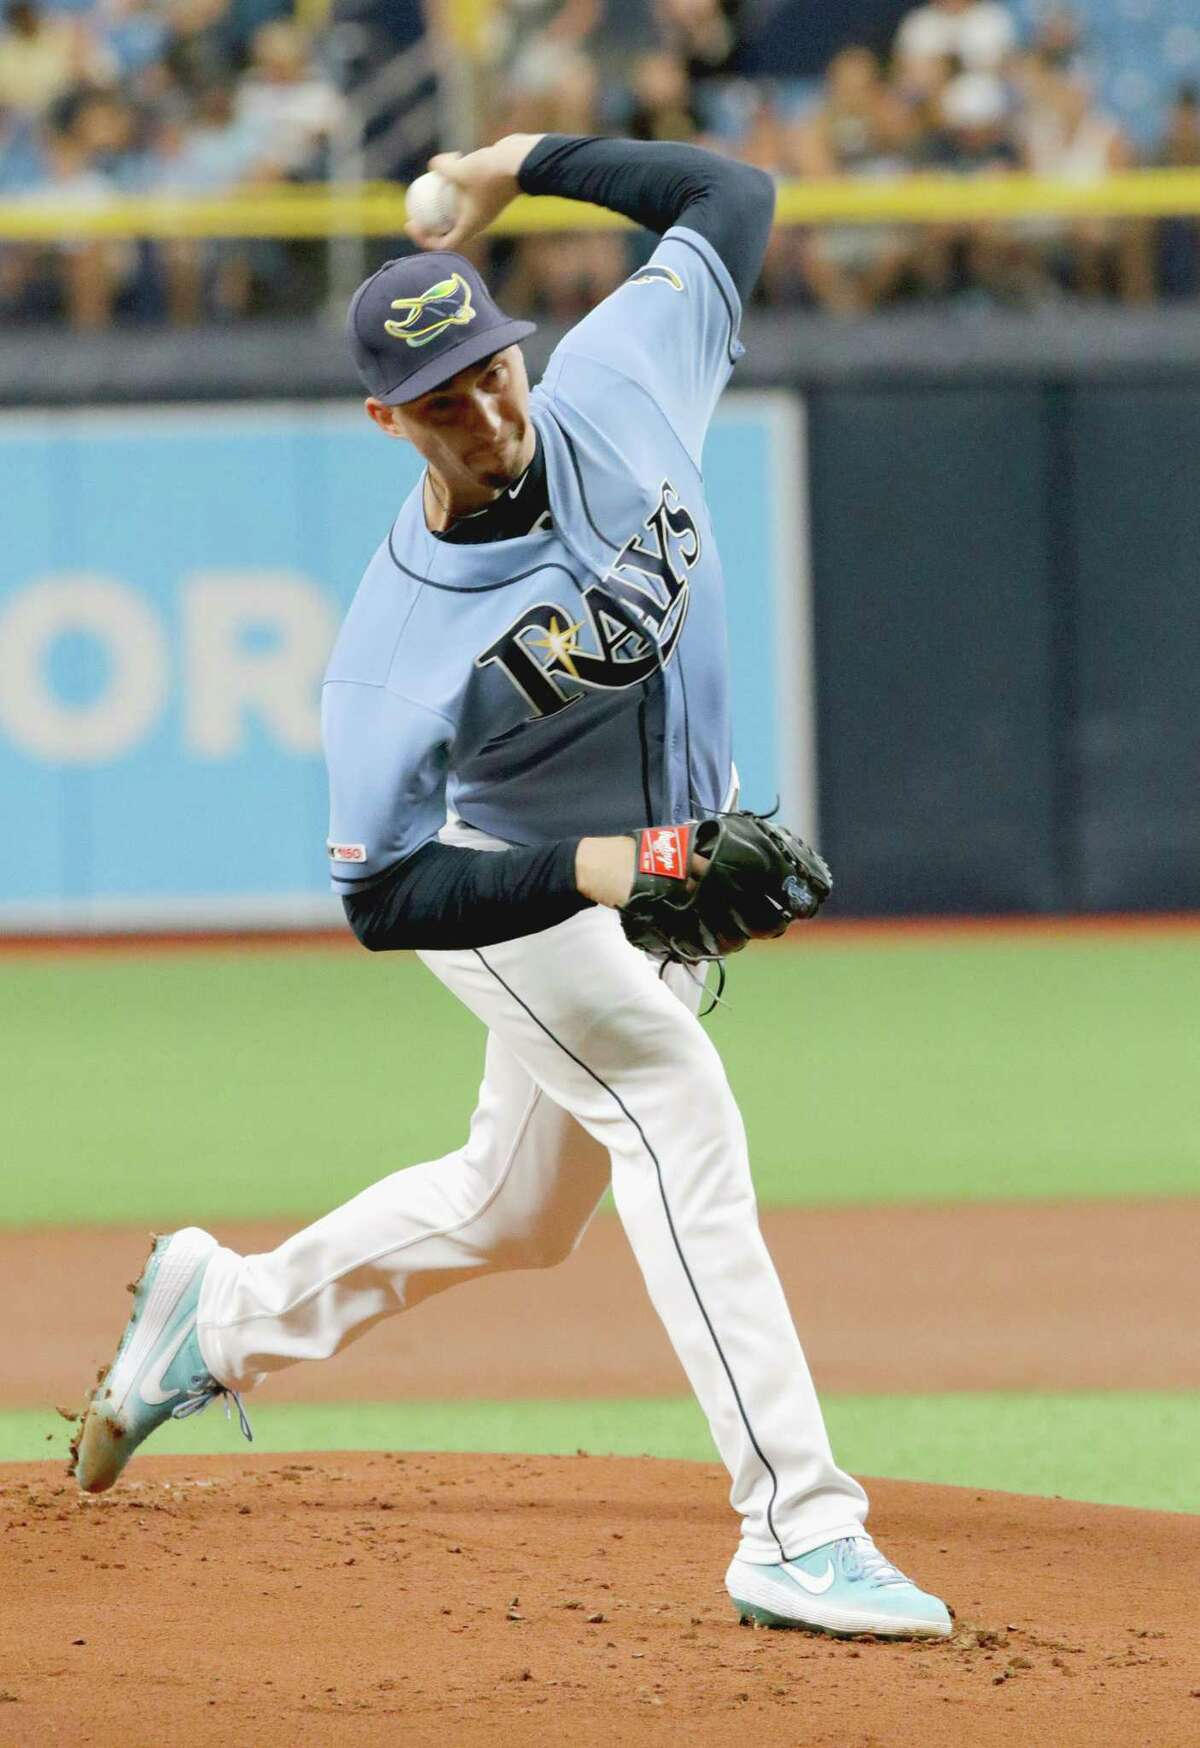 ST. PETERSBURG, FL - JUNE 30: Blake Snell #4 of the Tampa Bay Raysdelivers a pitch during the top of the first inning against the Texas Rangers of their game at Tropicana Field on June 30, 2019 in St. Petersburg, Florida. (Photo by Joseph Garnett Jr. /Getty Images)